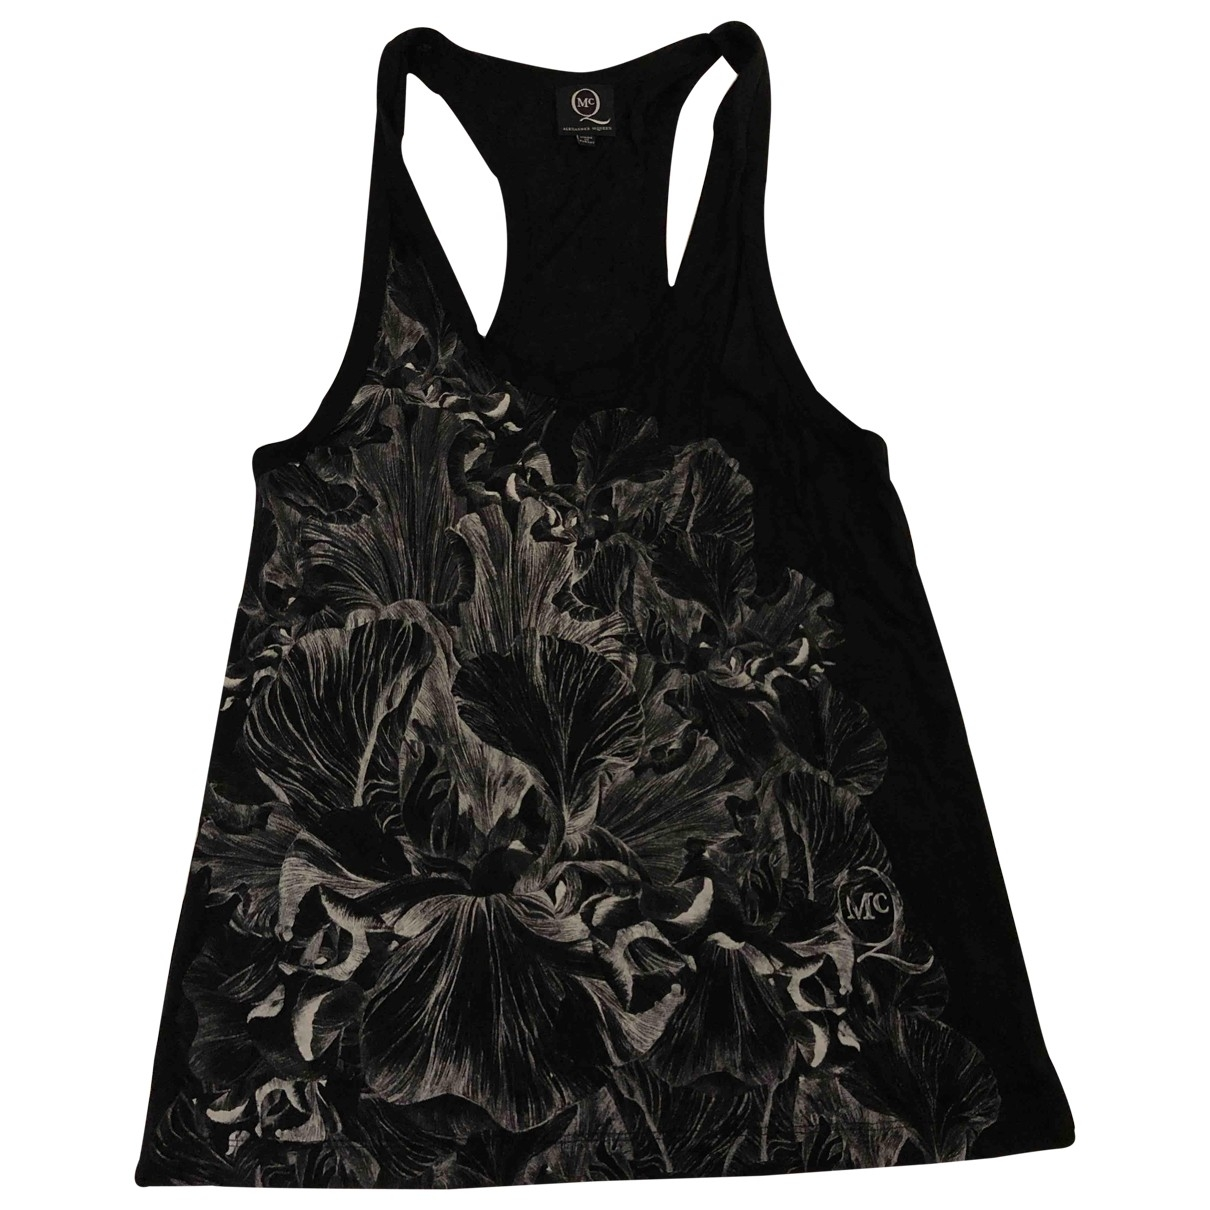 Mcq \N Black  top for Women S International